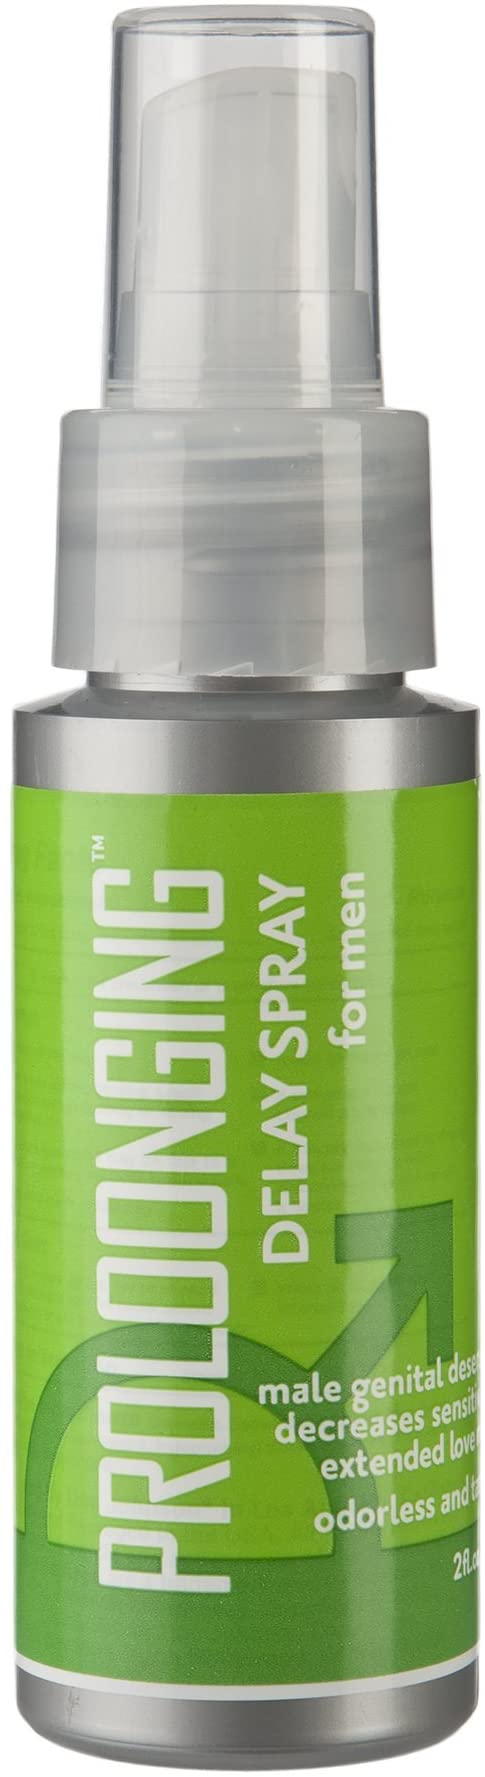 Proloonging Delay Spray for Men số 1 USA